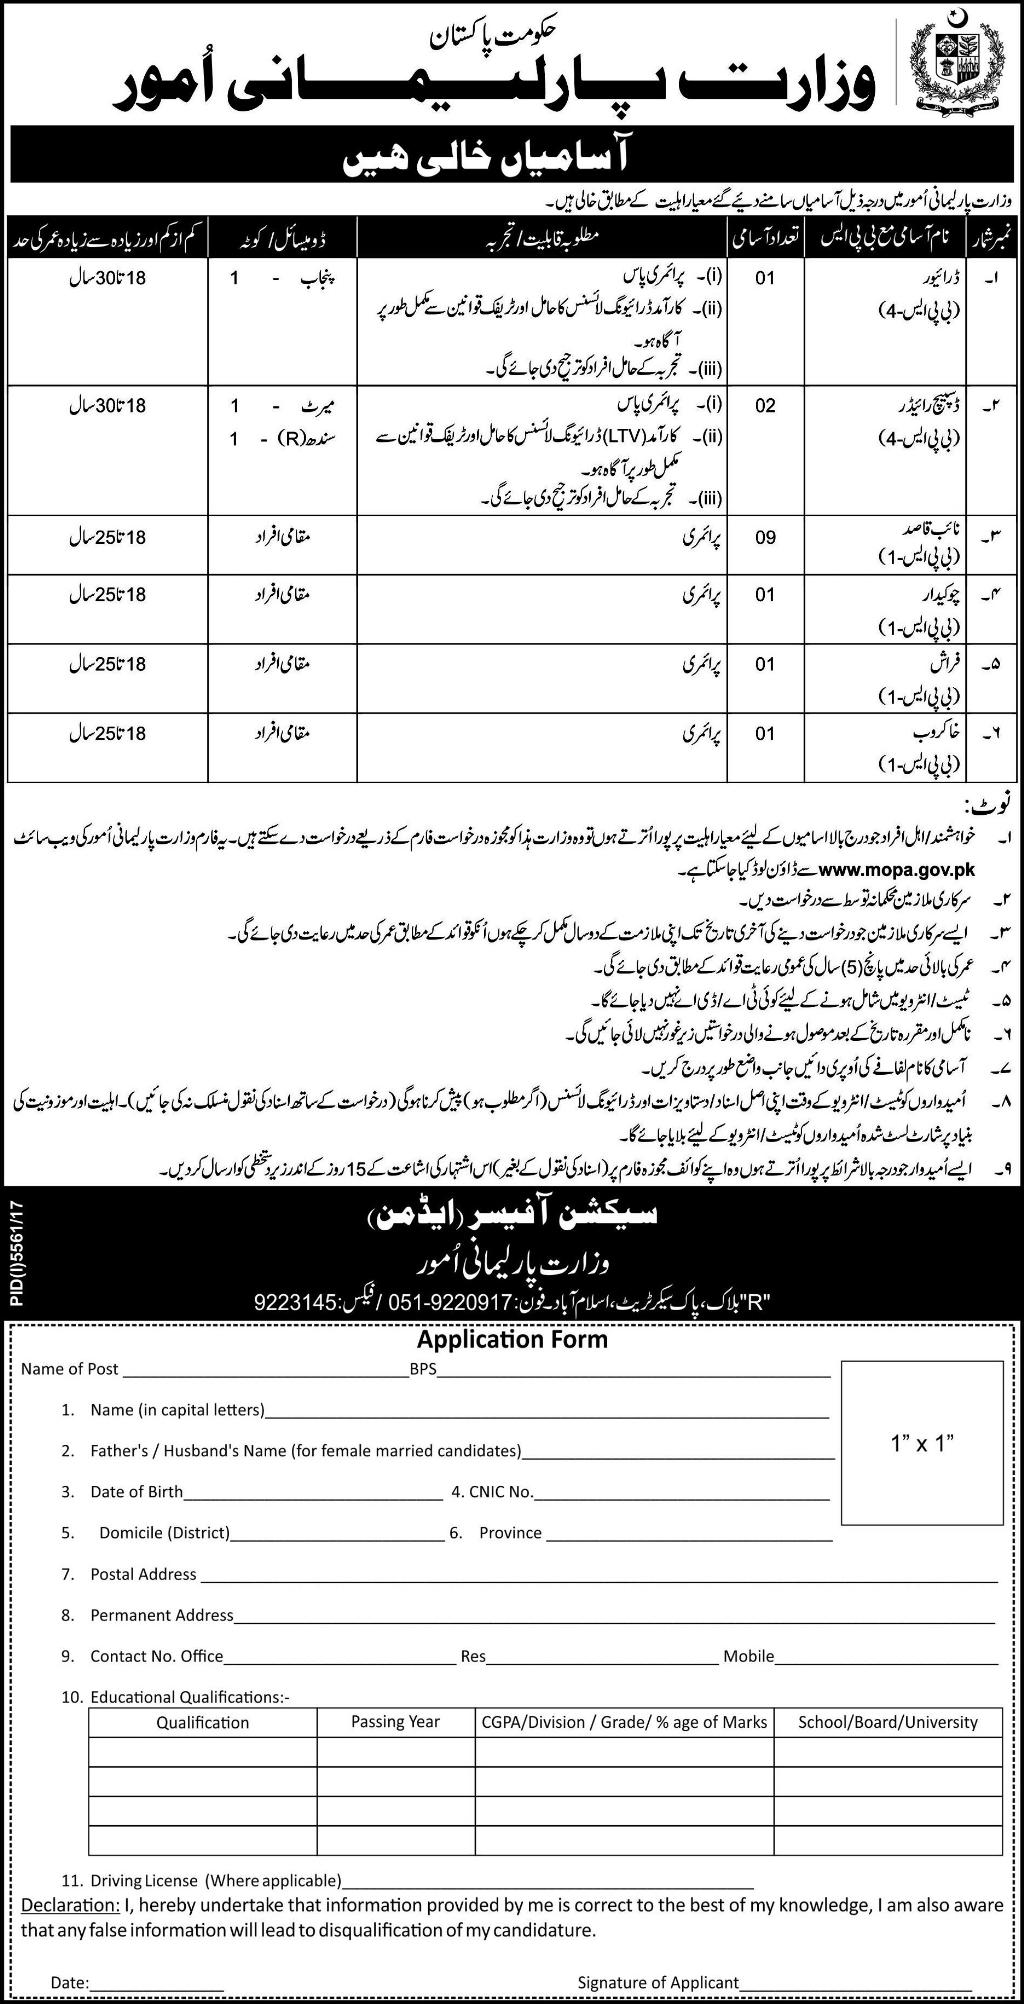 Jobs in Ministry of Parliamentary Affairs Daily Express Newspaper 09April 2018